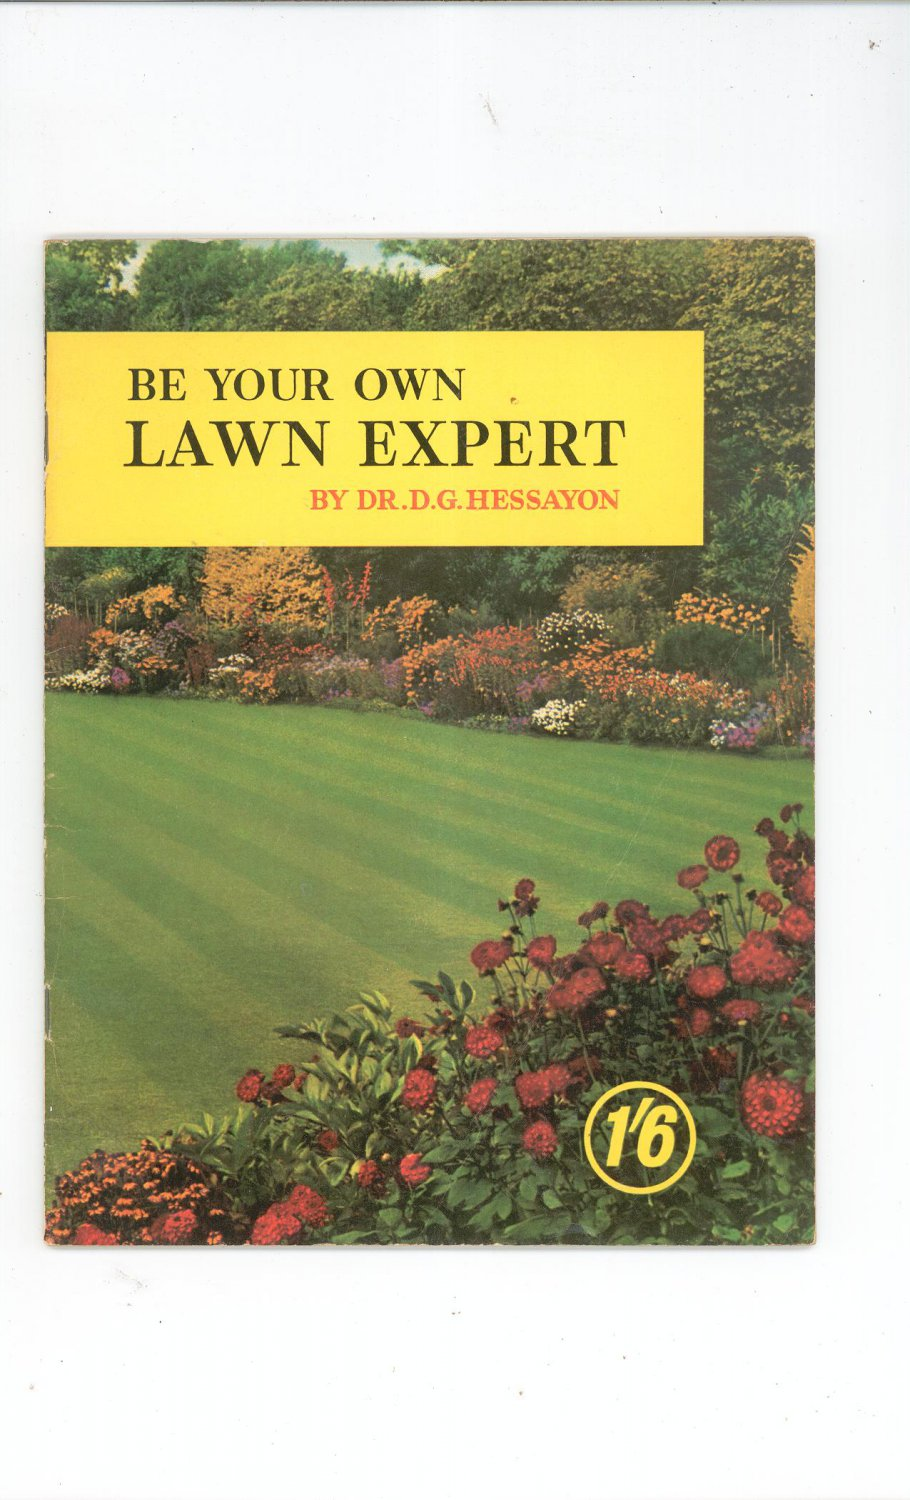 be your own gardening expert hessayon The series started in 1958 with be your own gardening expert and in 2008 the celebrated their 50th anniversary and the 50 millionth copy in print the vegetable expert by hessayon dr d g - abebooks the vegetable expert by hessayon, dr d g.